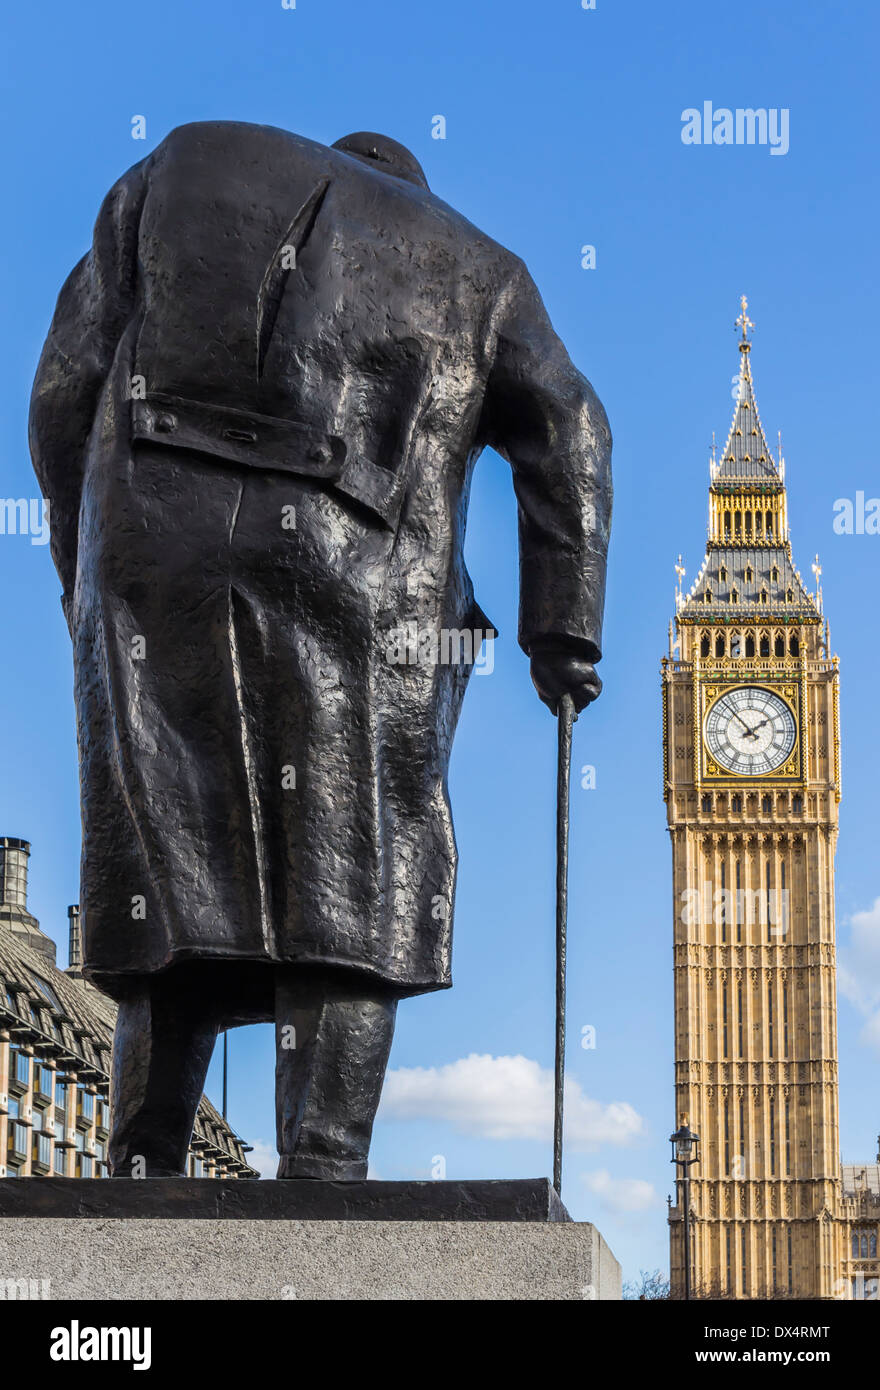 Sir Winston Churchill Statue in Parliament Square London with Big Ben - Stock Image